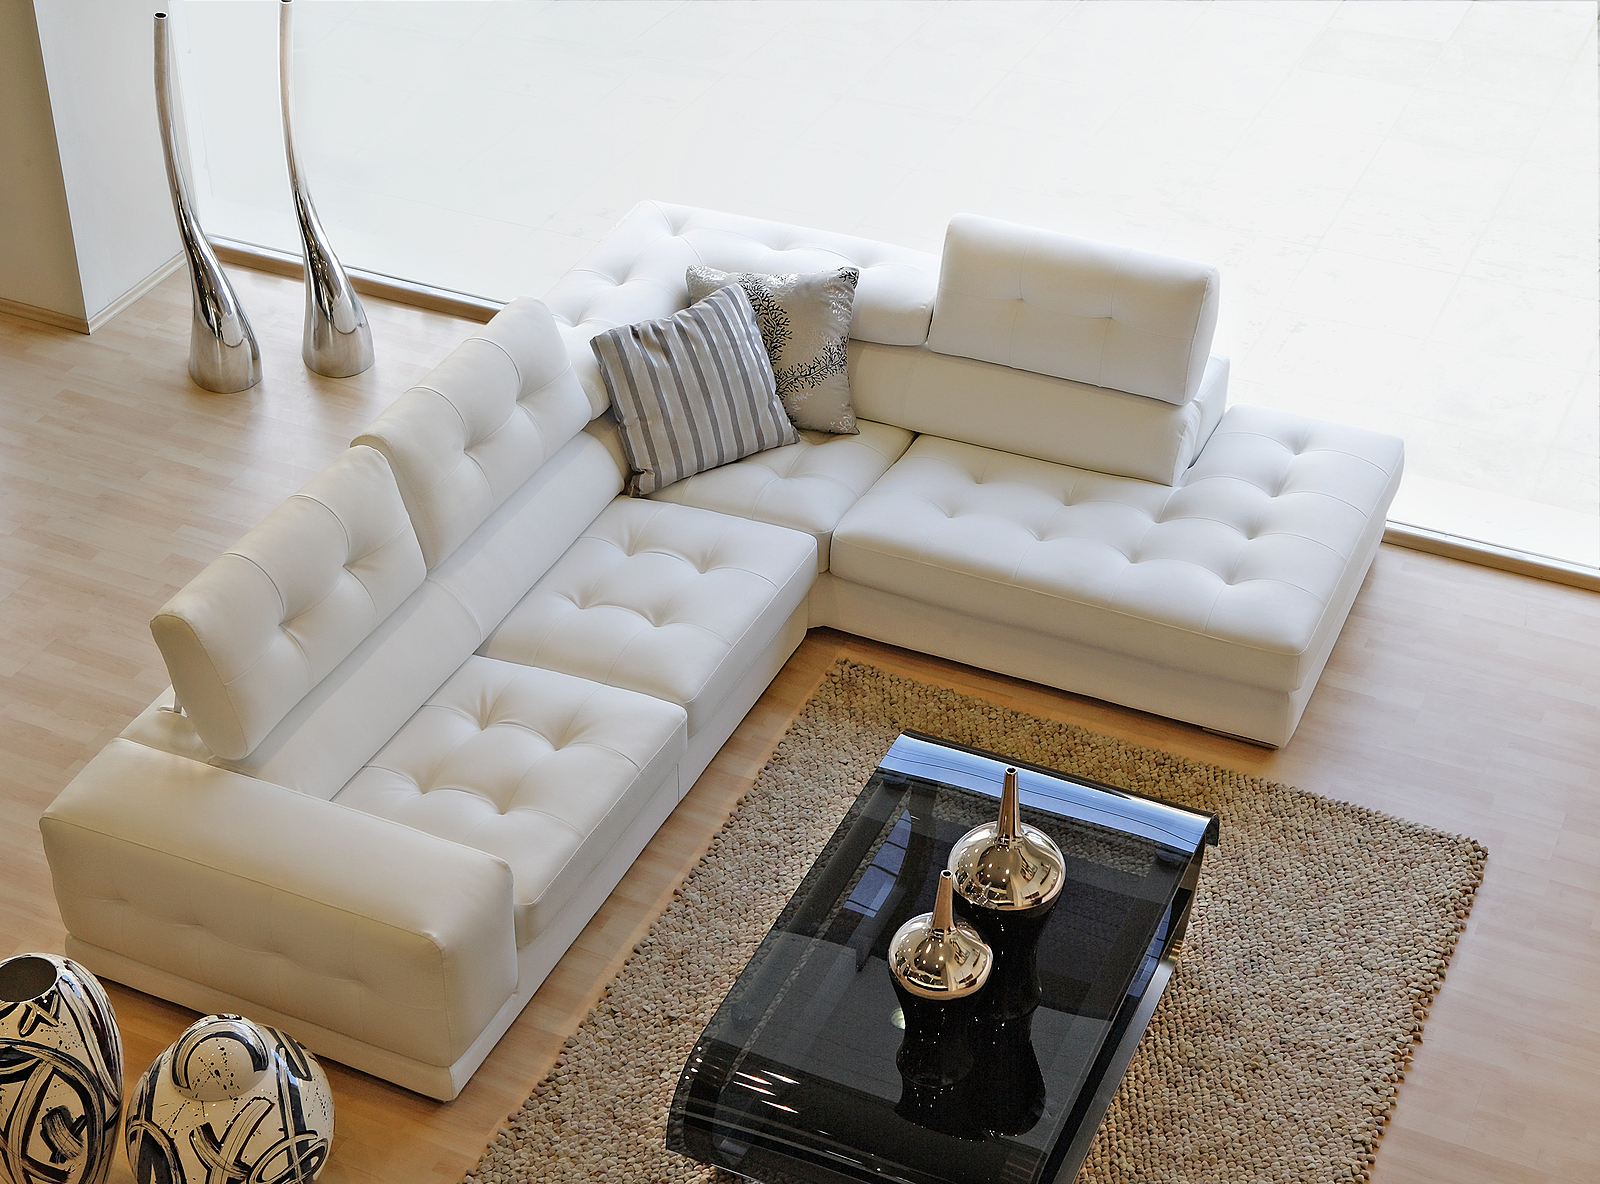 Modern-Living-Room-with-White-Sofa-Coffee-Table-Light-Interior